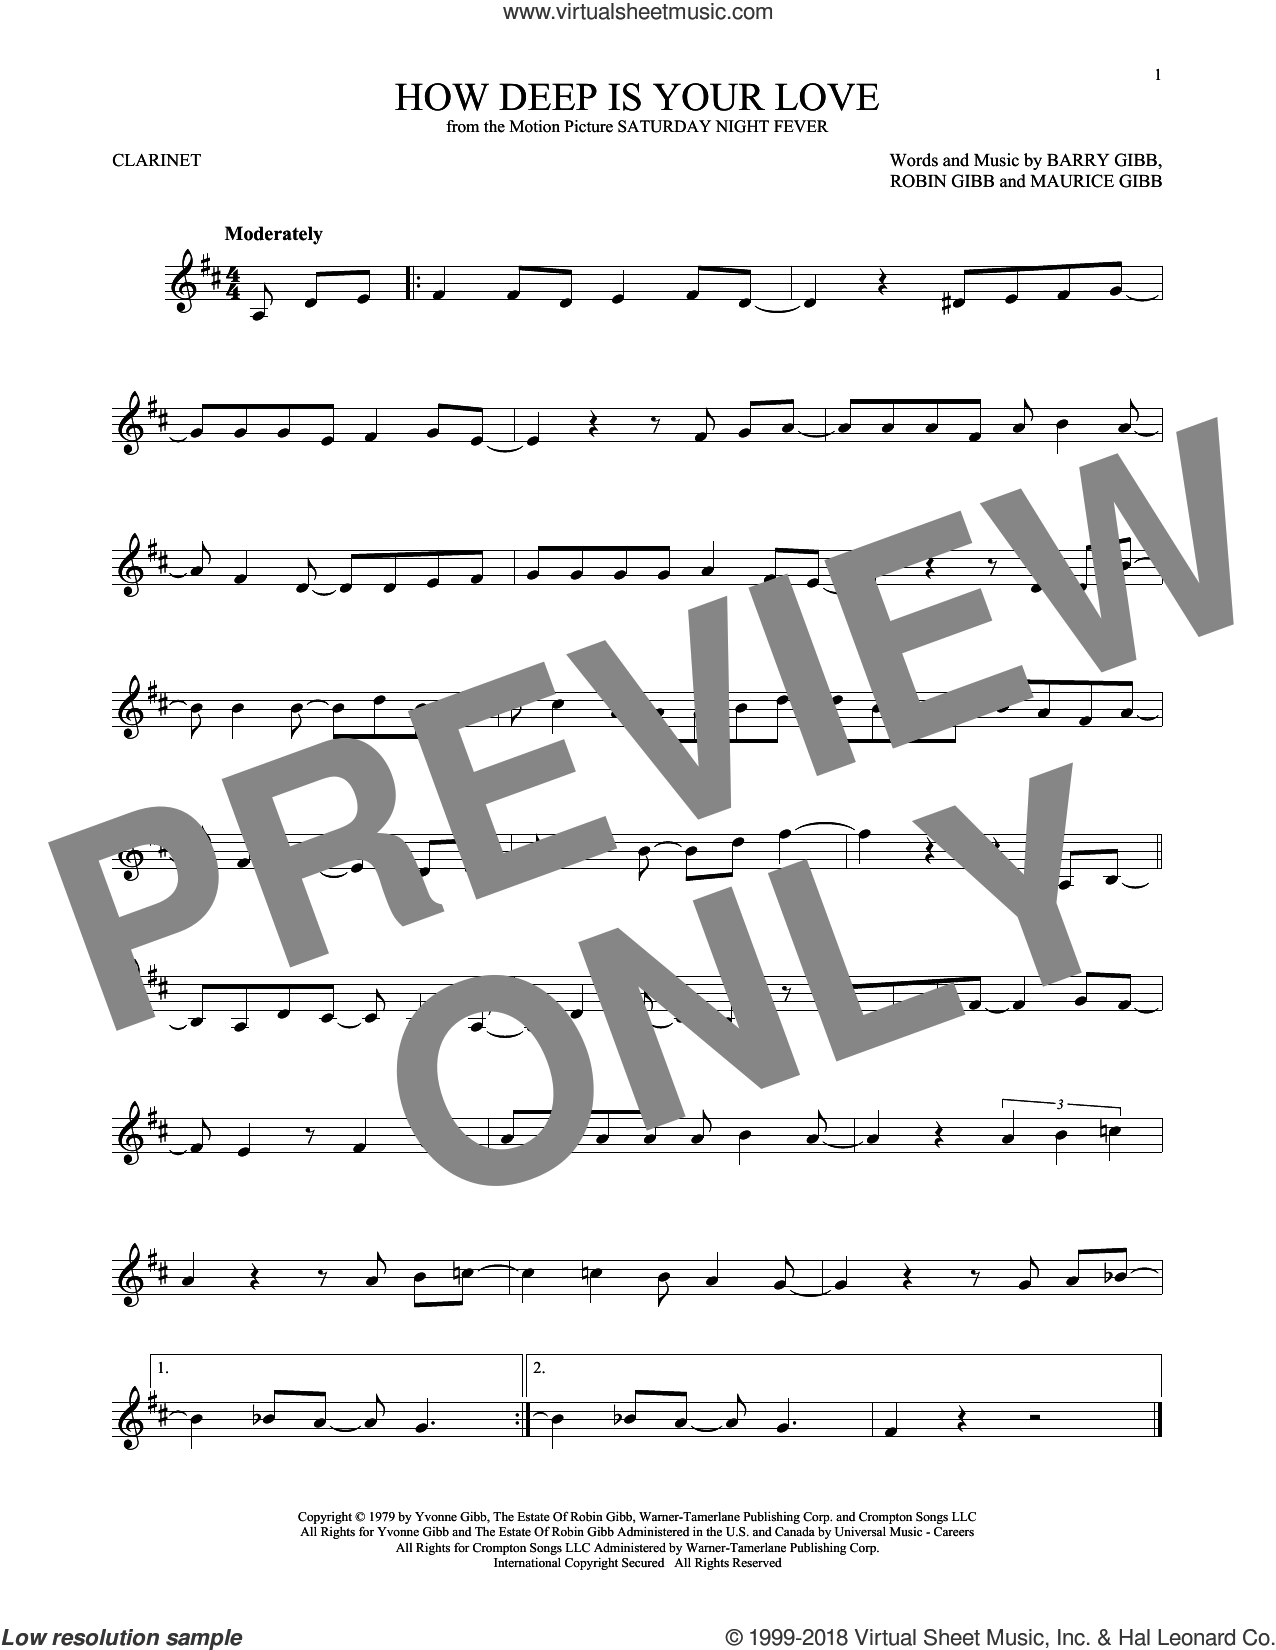 How Deep Is Your Love sheet music for clarinet solo by Bee Gees, Barry Gibb, Maurice Gibb and Robin Gibb, intermediate skill level